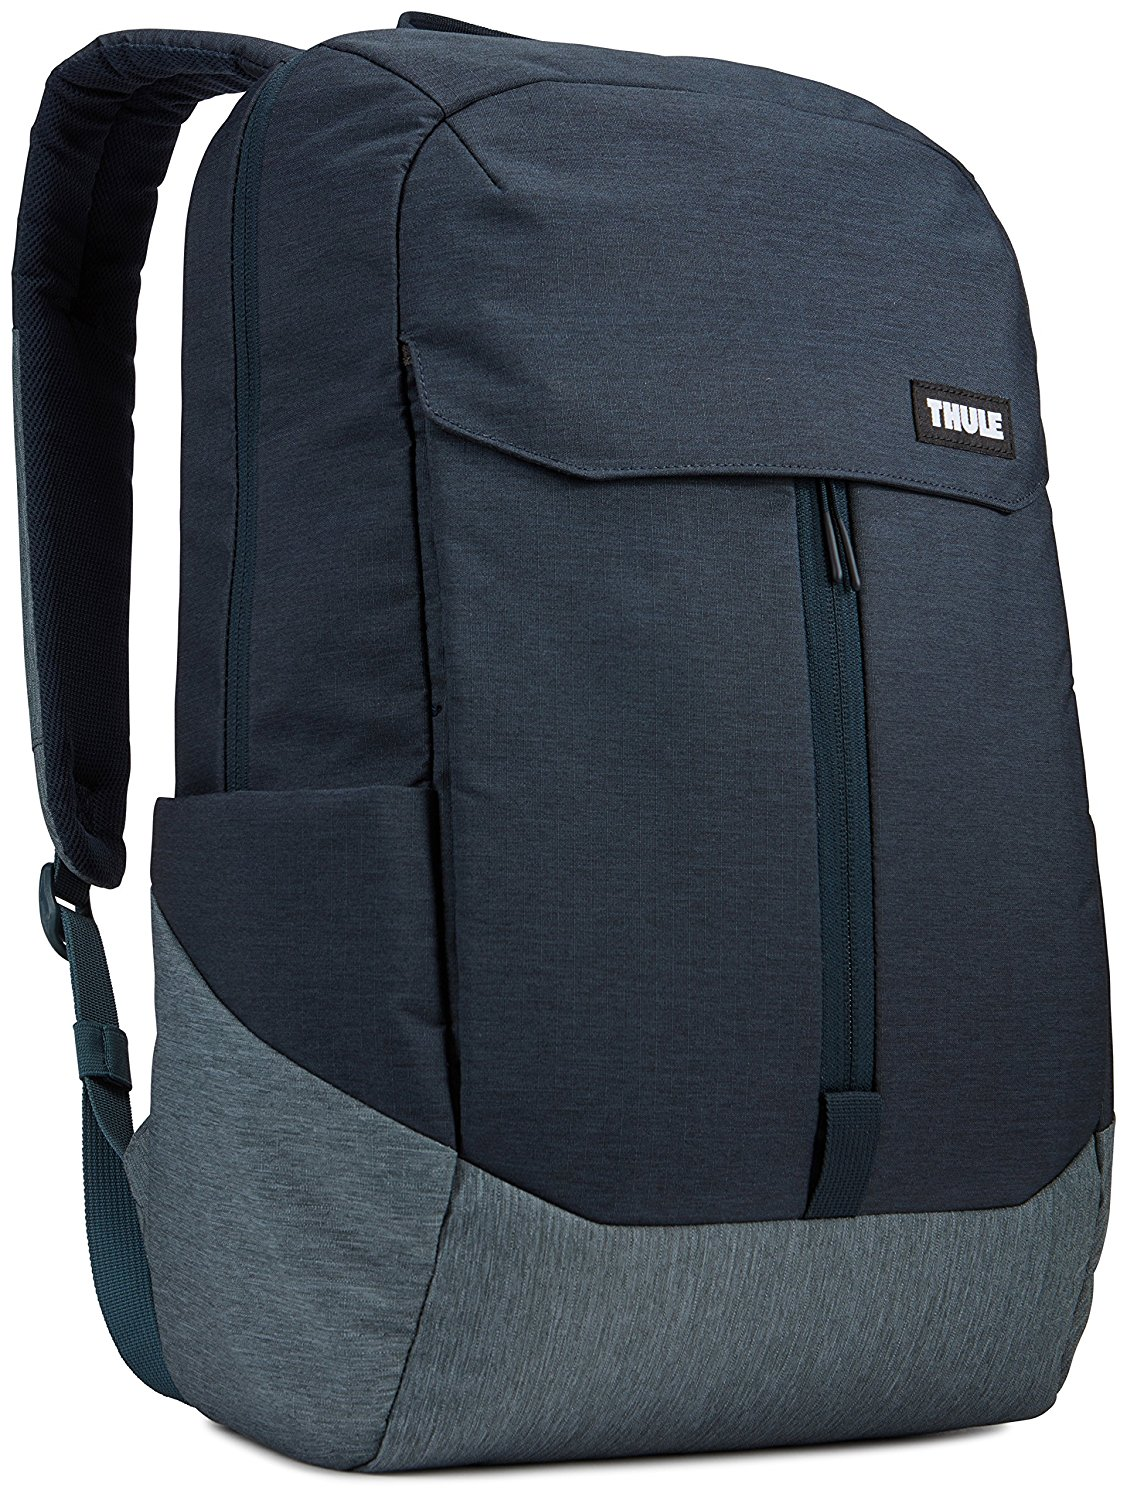 Рюкзак Thule Lithos Backpack 20L (Carbon Blue)